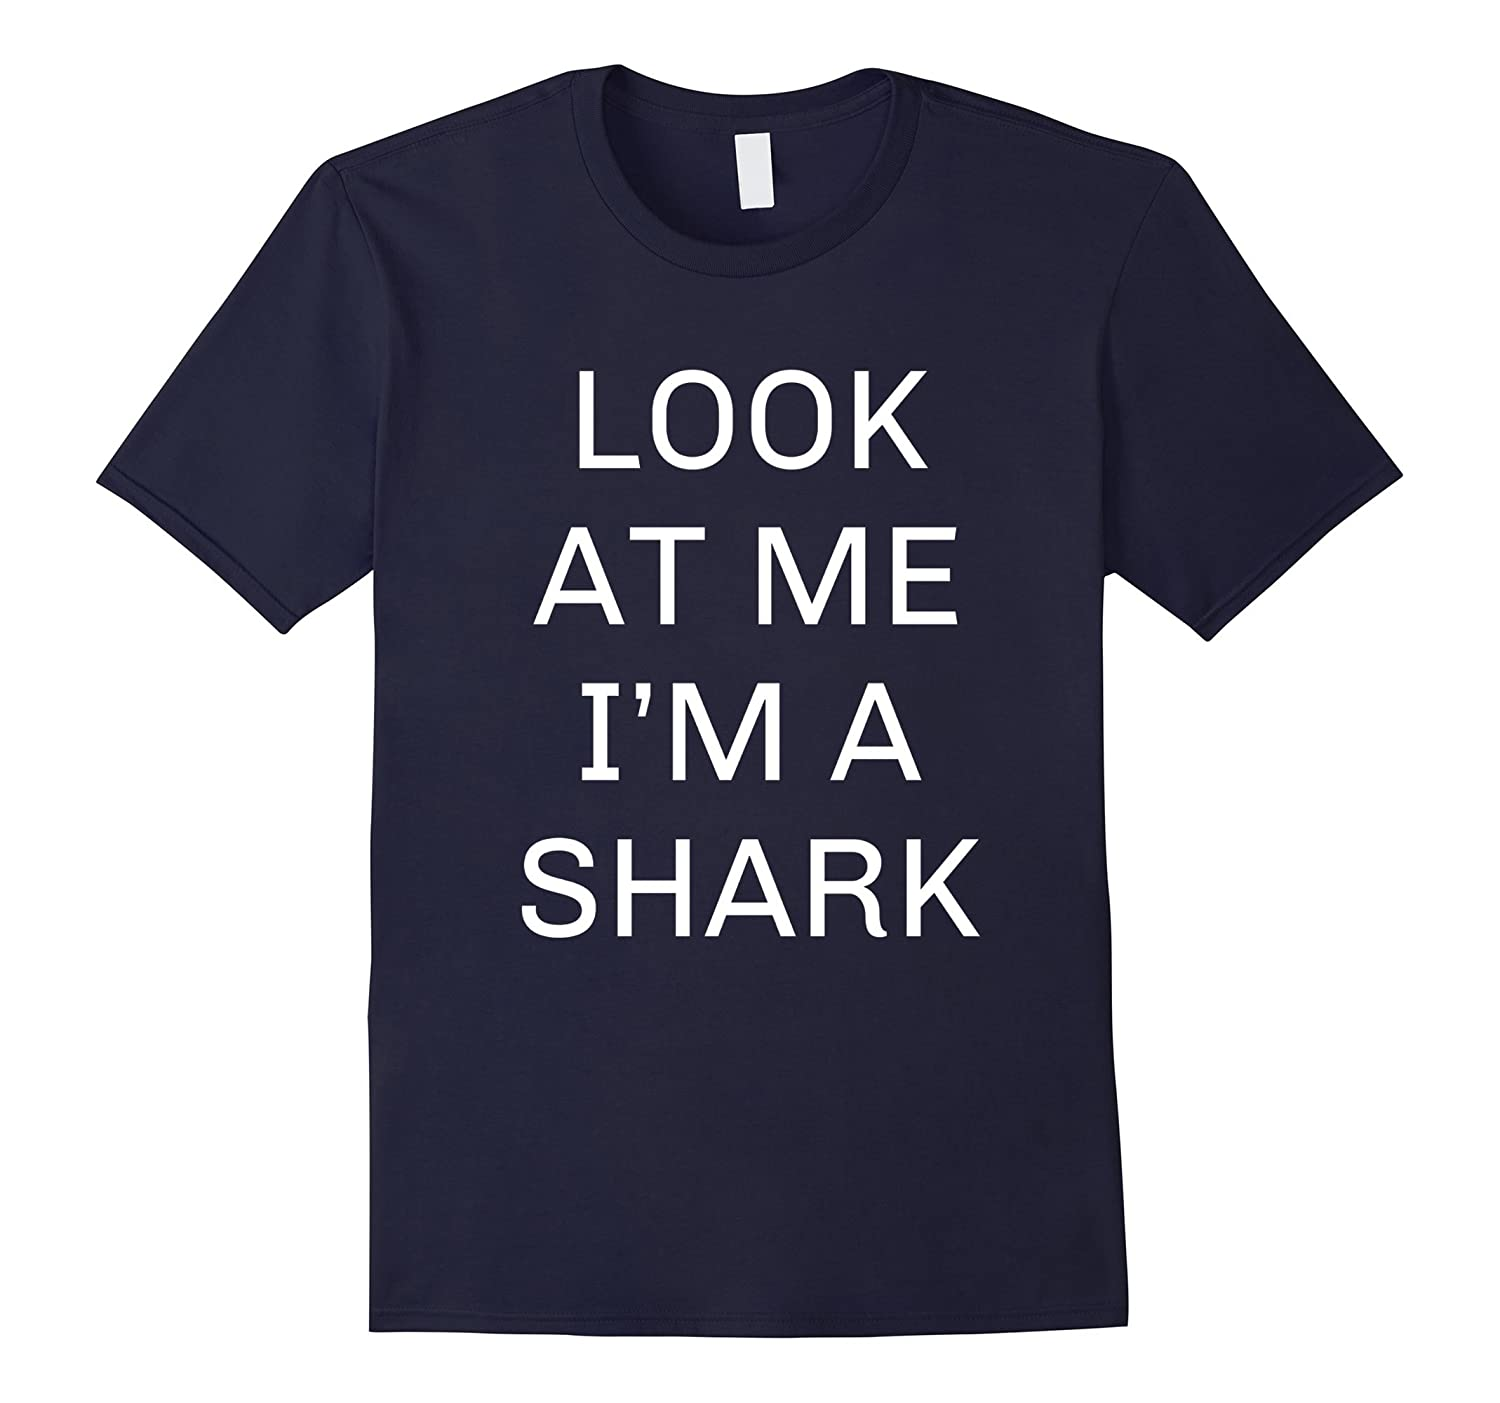 Look At Me I'm a Shark Halloween Costume Shirt Women Men Kid-FL